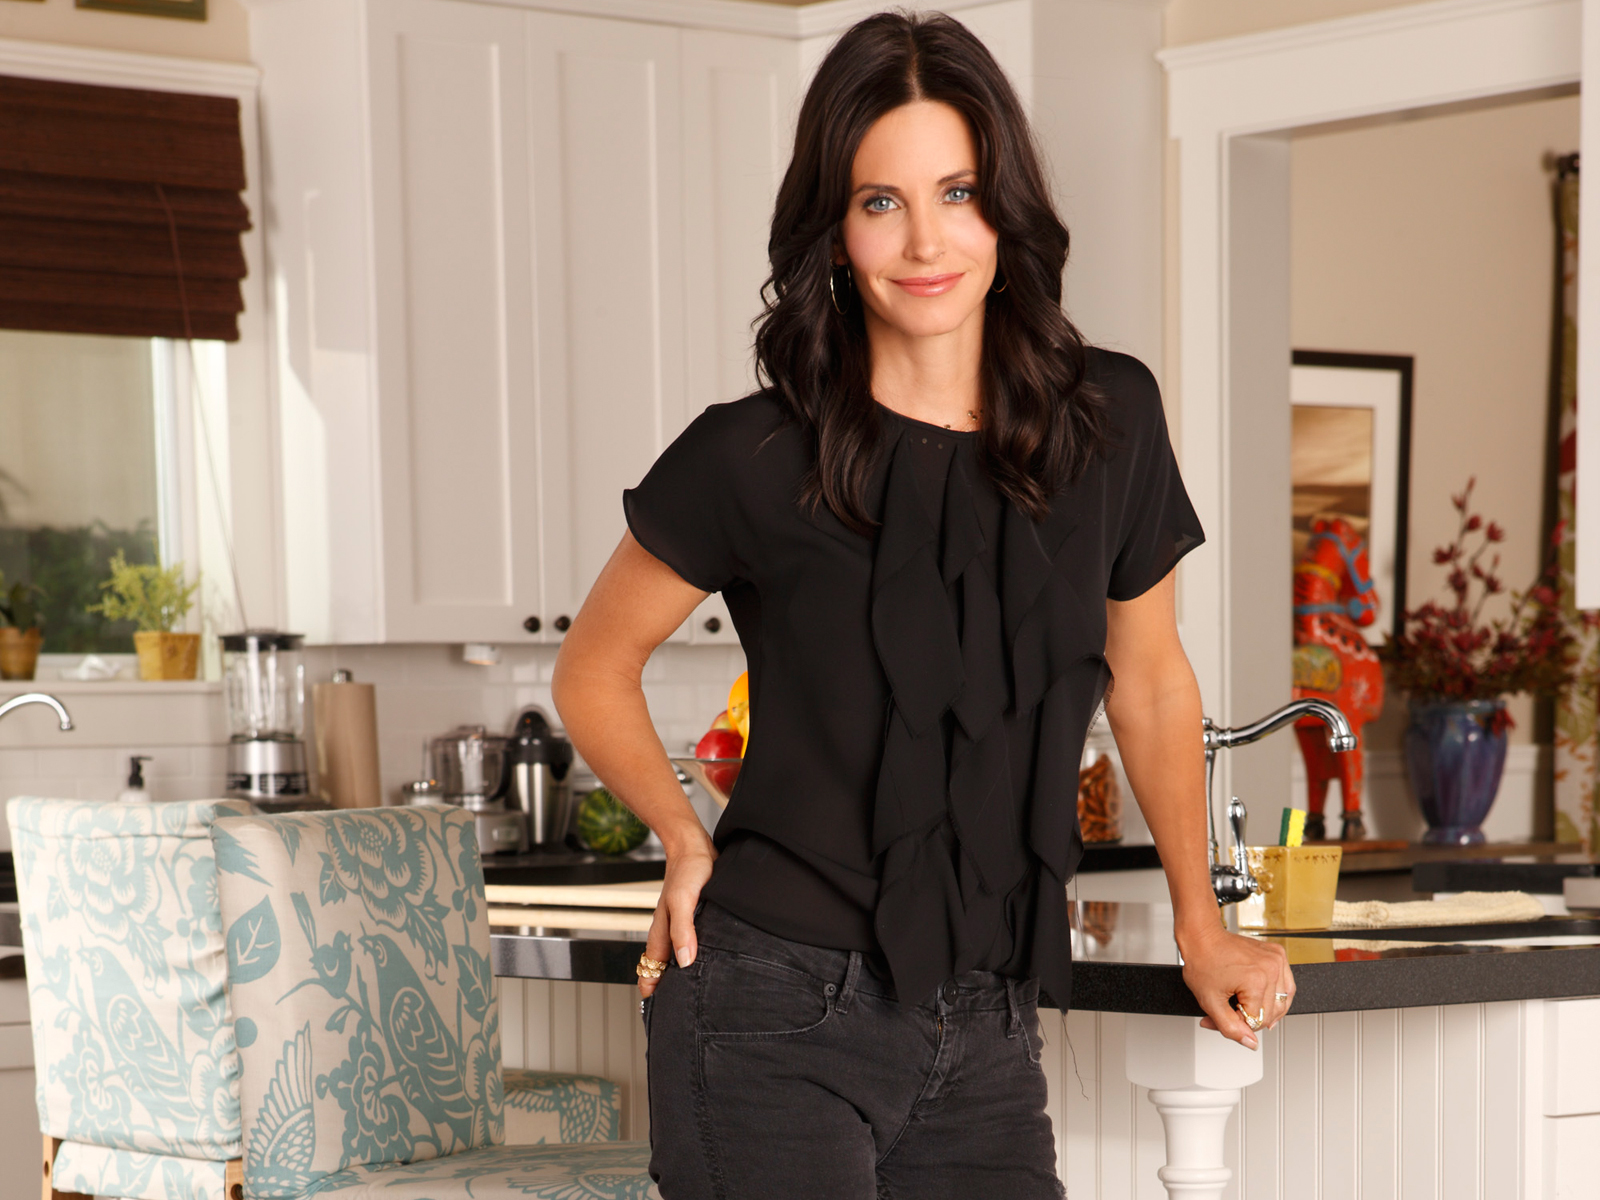 courteney cox wallpaper pictures 54463